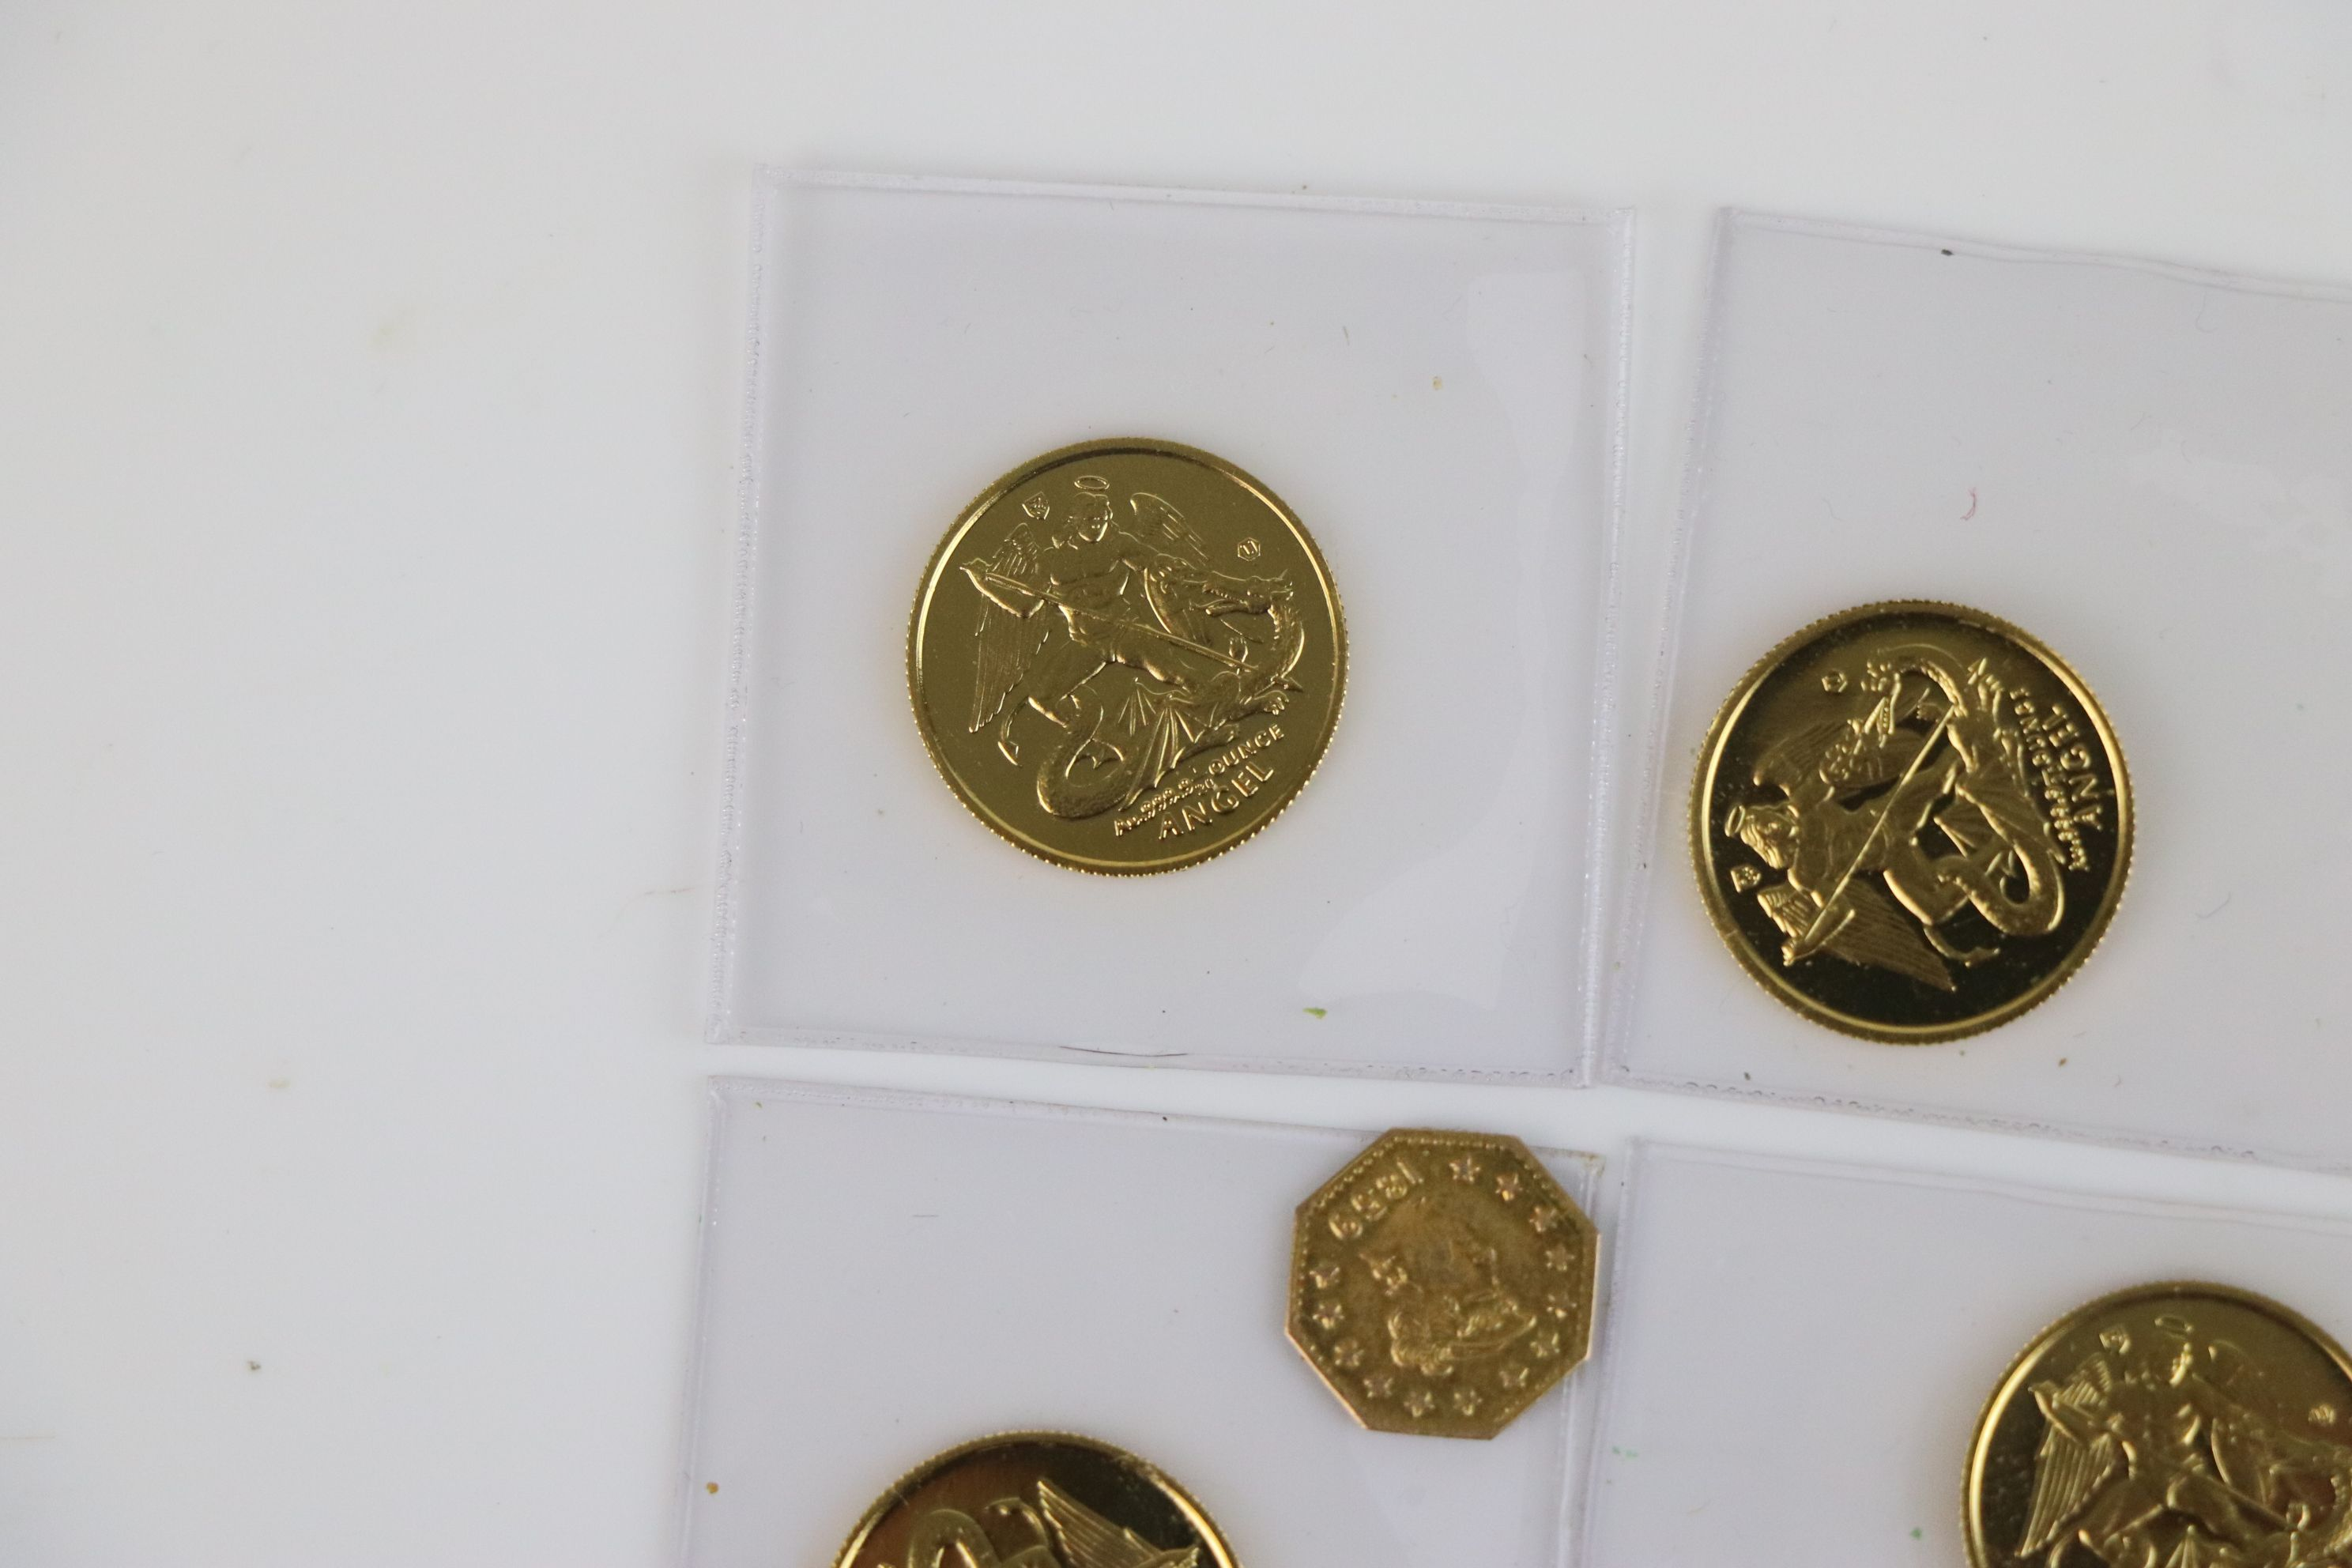 A small collection of British gold coins to include California gold rush 1/4 dollar and an Isle of - Image 2 of 6